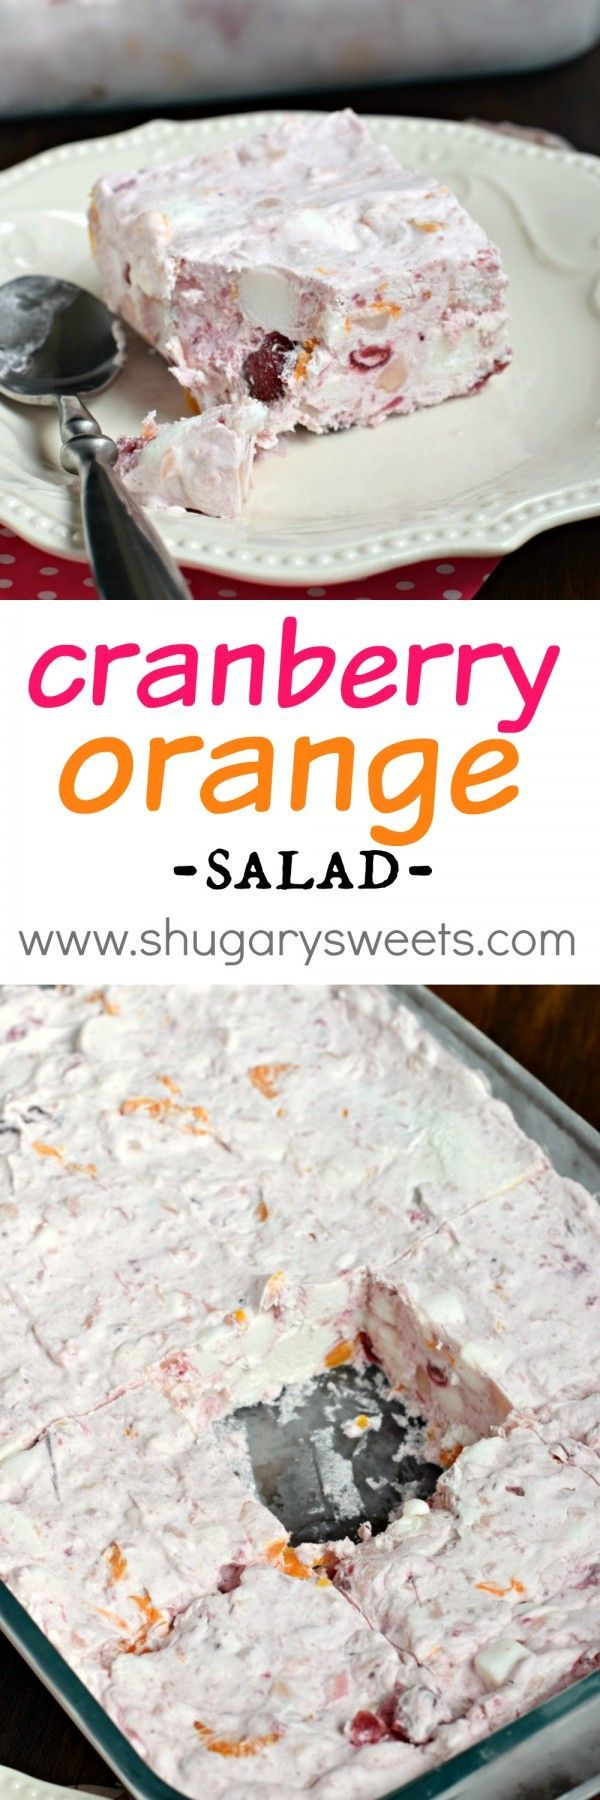 A sweet, fruity side dish, this Frozen Cranberry Orange Salad is great for the holidays. This recipe can be made days in advance!